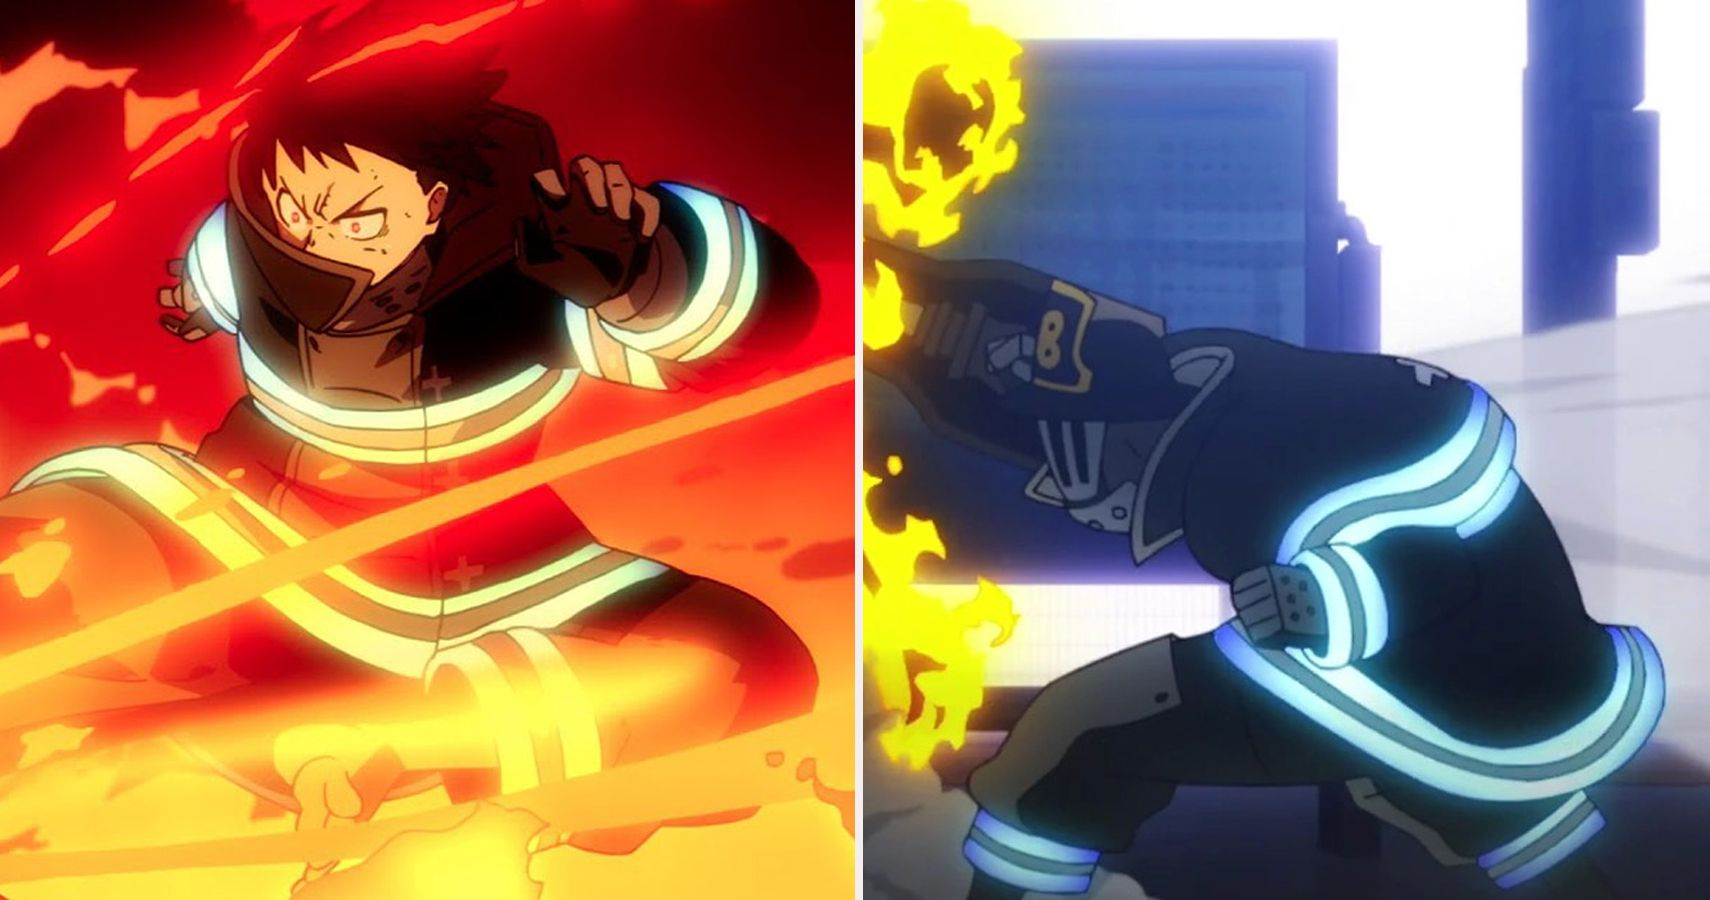 15 Best Characters In Fire Force, Ranked | CBR